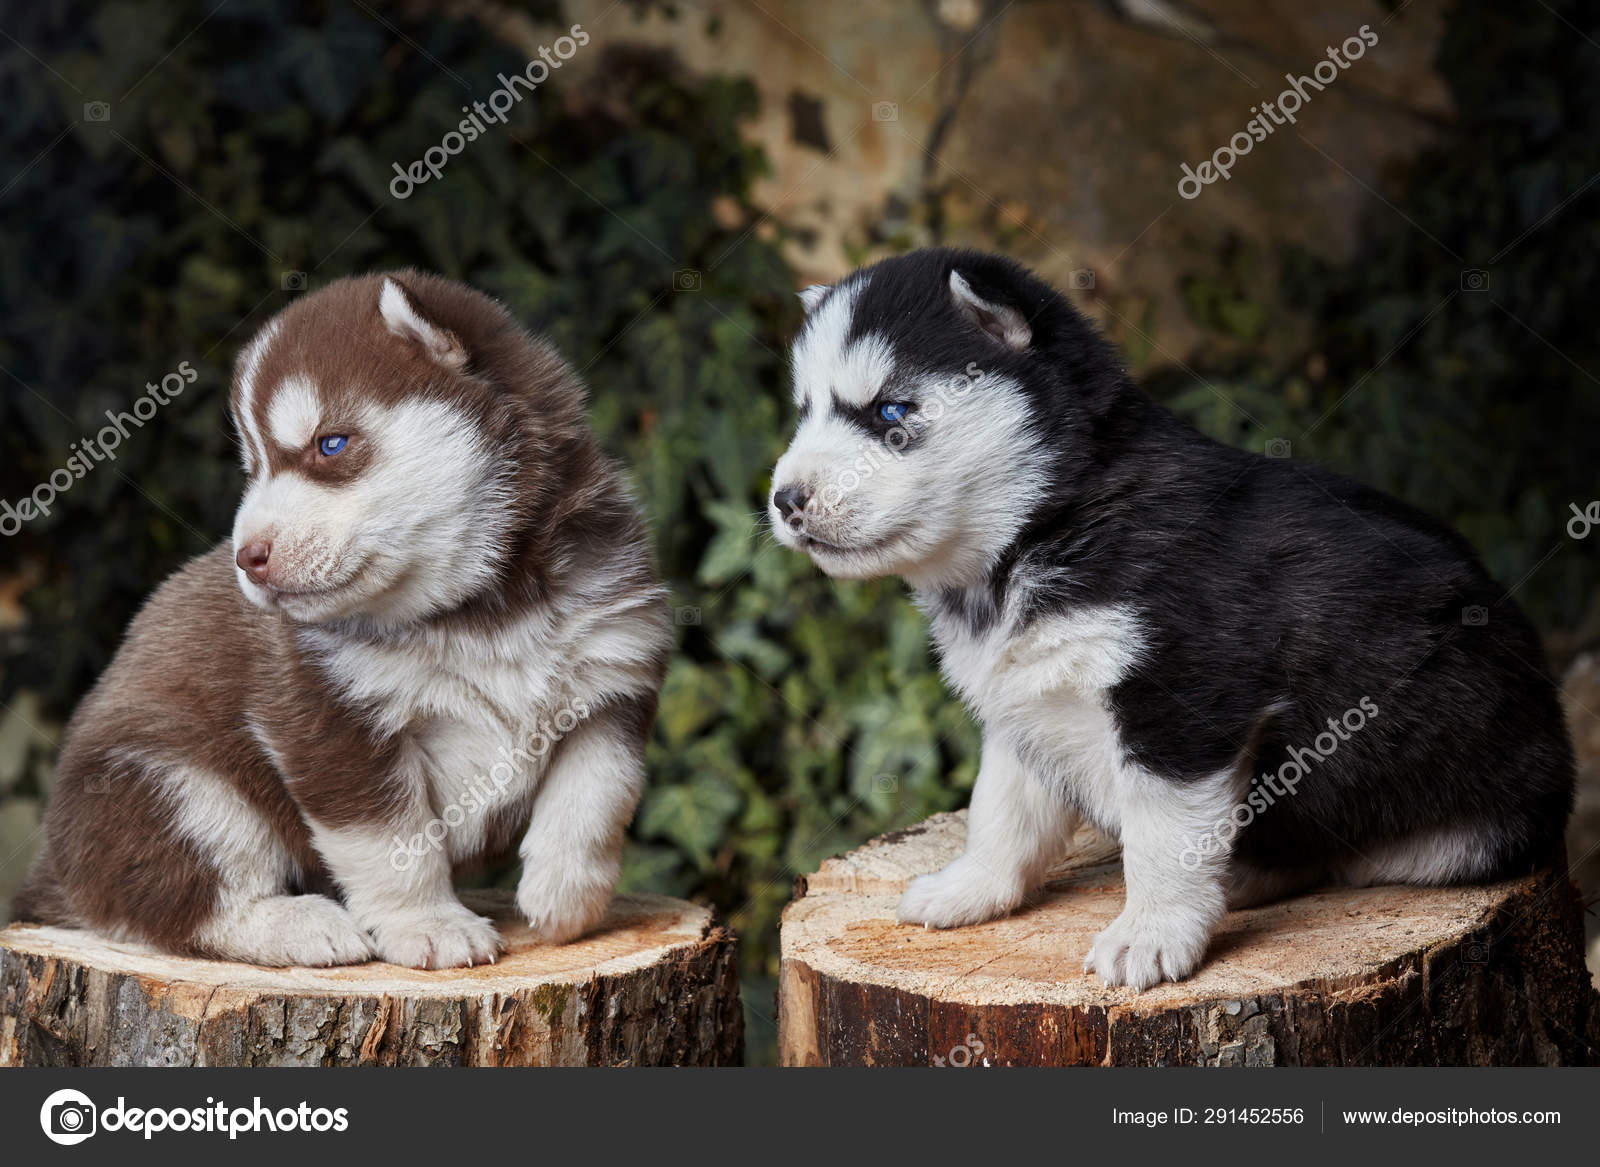 Two Newborn Siberian Husky Playing Brown And Black Puppy Siberian Husky Siberian Husky Copper And Black Color Stock Photo C Simplesseller Gmail Com 291452556